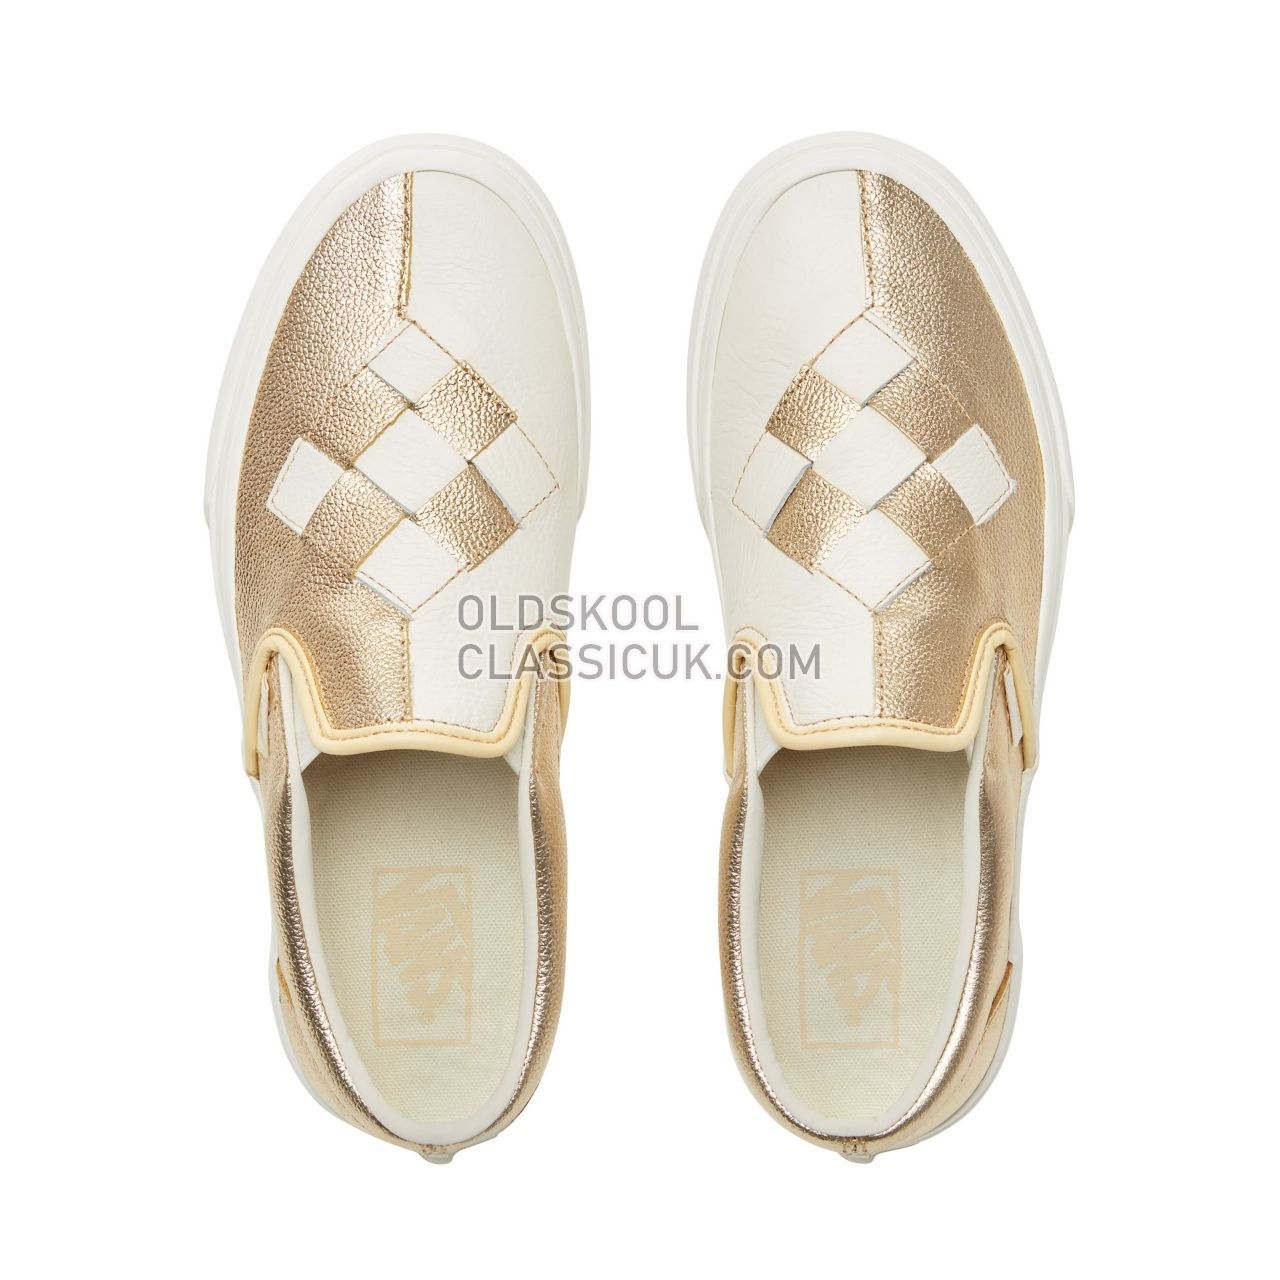 Vans Woven Leather Slip-On Sneakers Womens (Woven Leather) Brushed Gold/Snow White VN0A38F7VMU Shoes